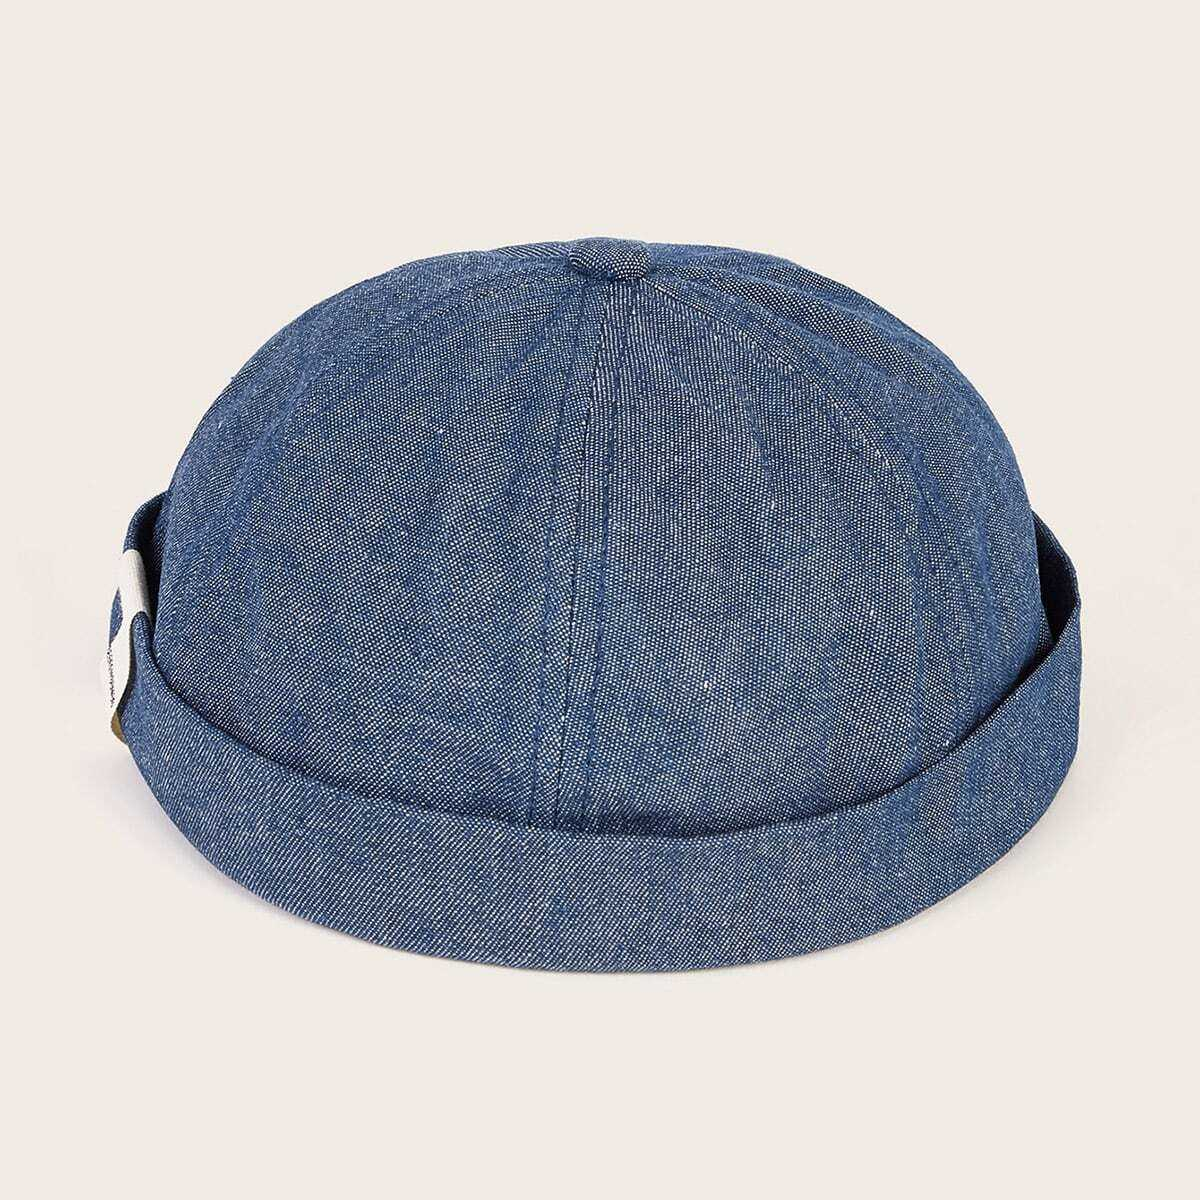 Guys Solid Cuffed Beanie in Blue by ROMWE on GOOFASH